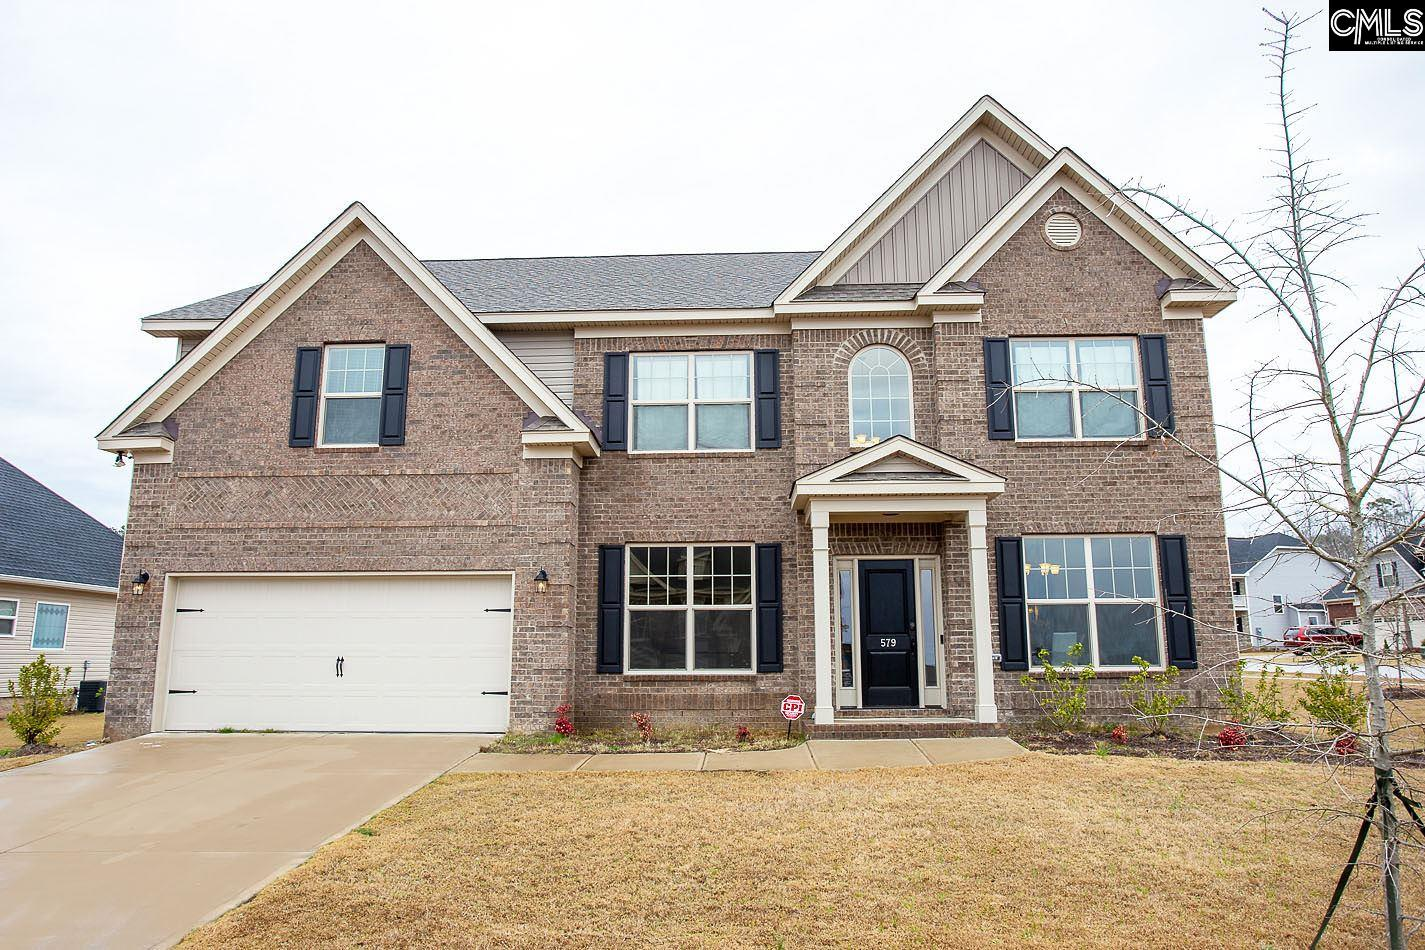 579 Maple Valley Blythewood, SC 29016